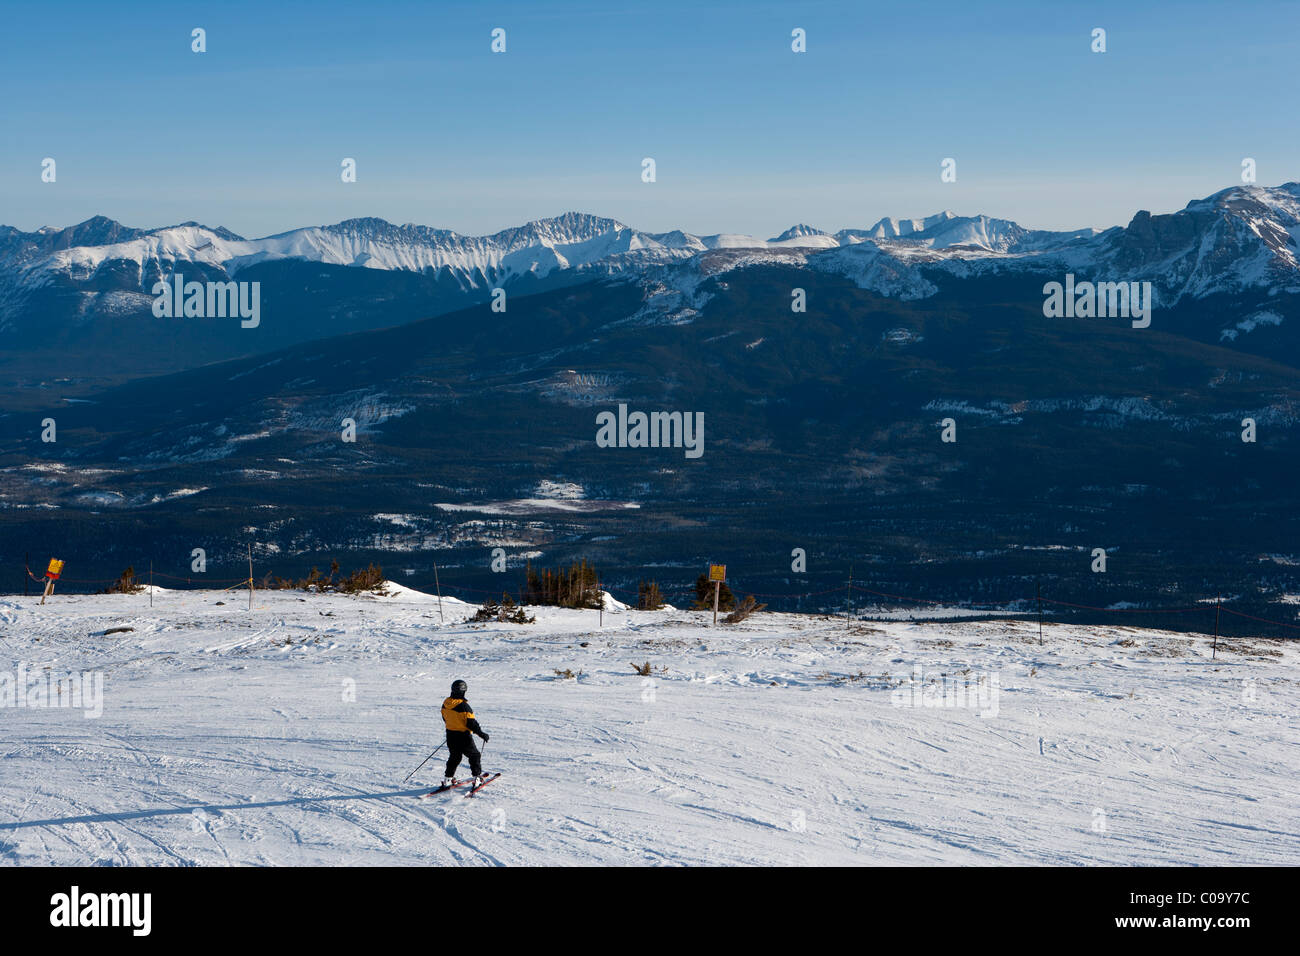 Single Skier overlooking mountain vista from on piste ski area. Rockey Mountains Alberta, Canada. - Stock Image